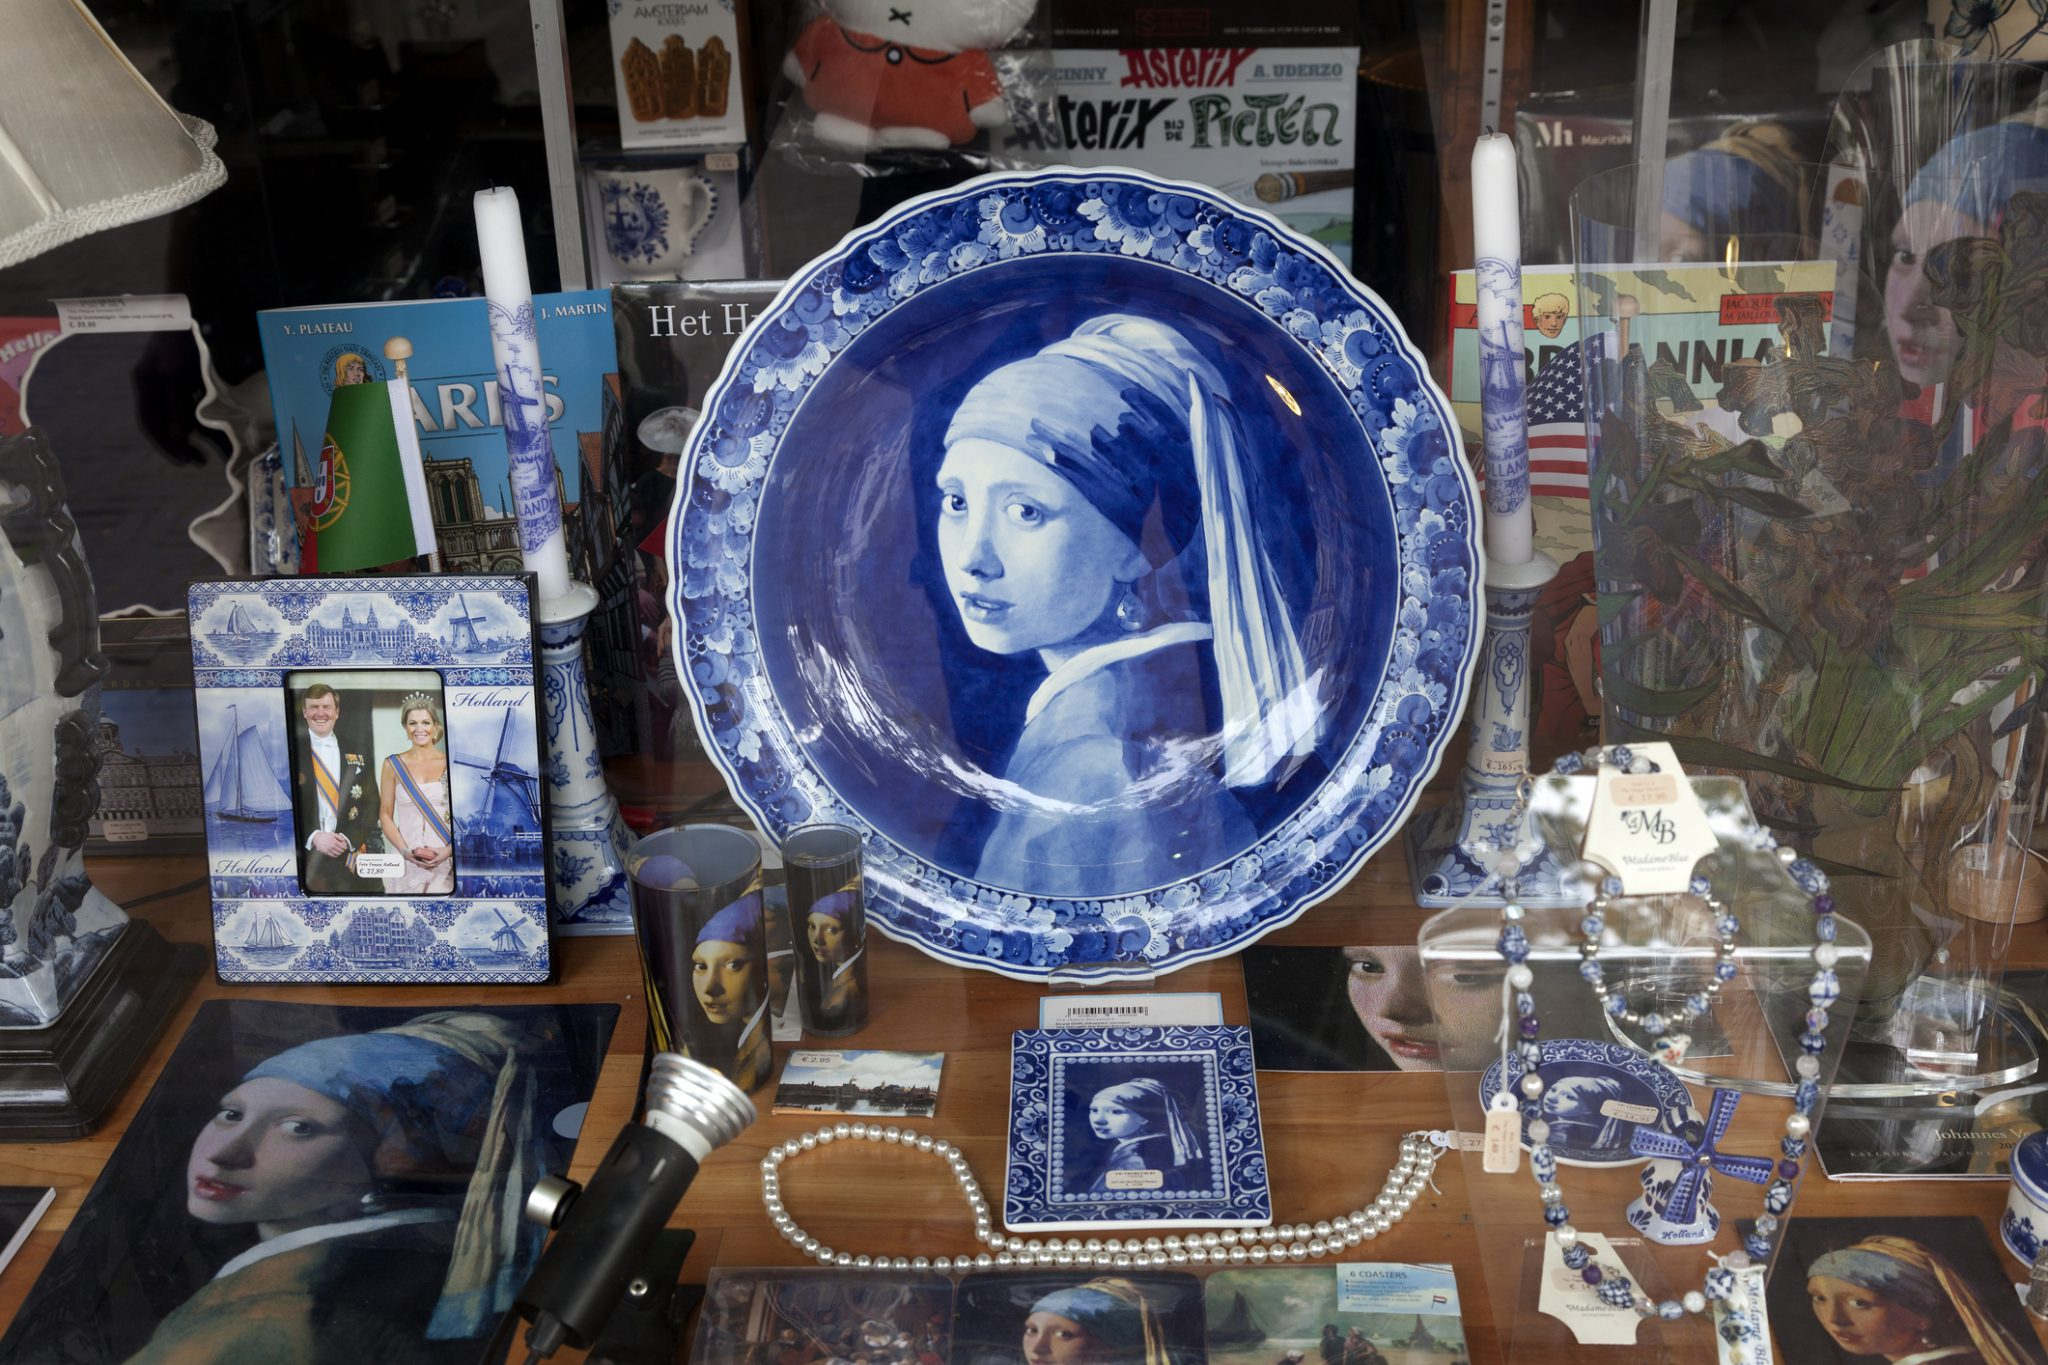 The Girl with the Pearl Earring plate, Den Haag